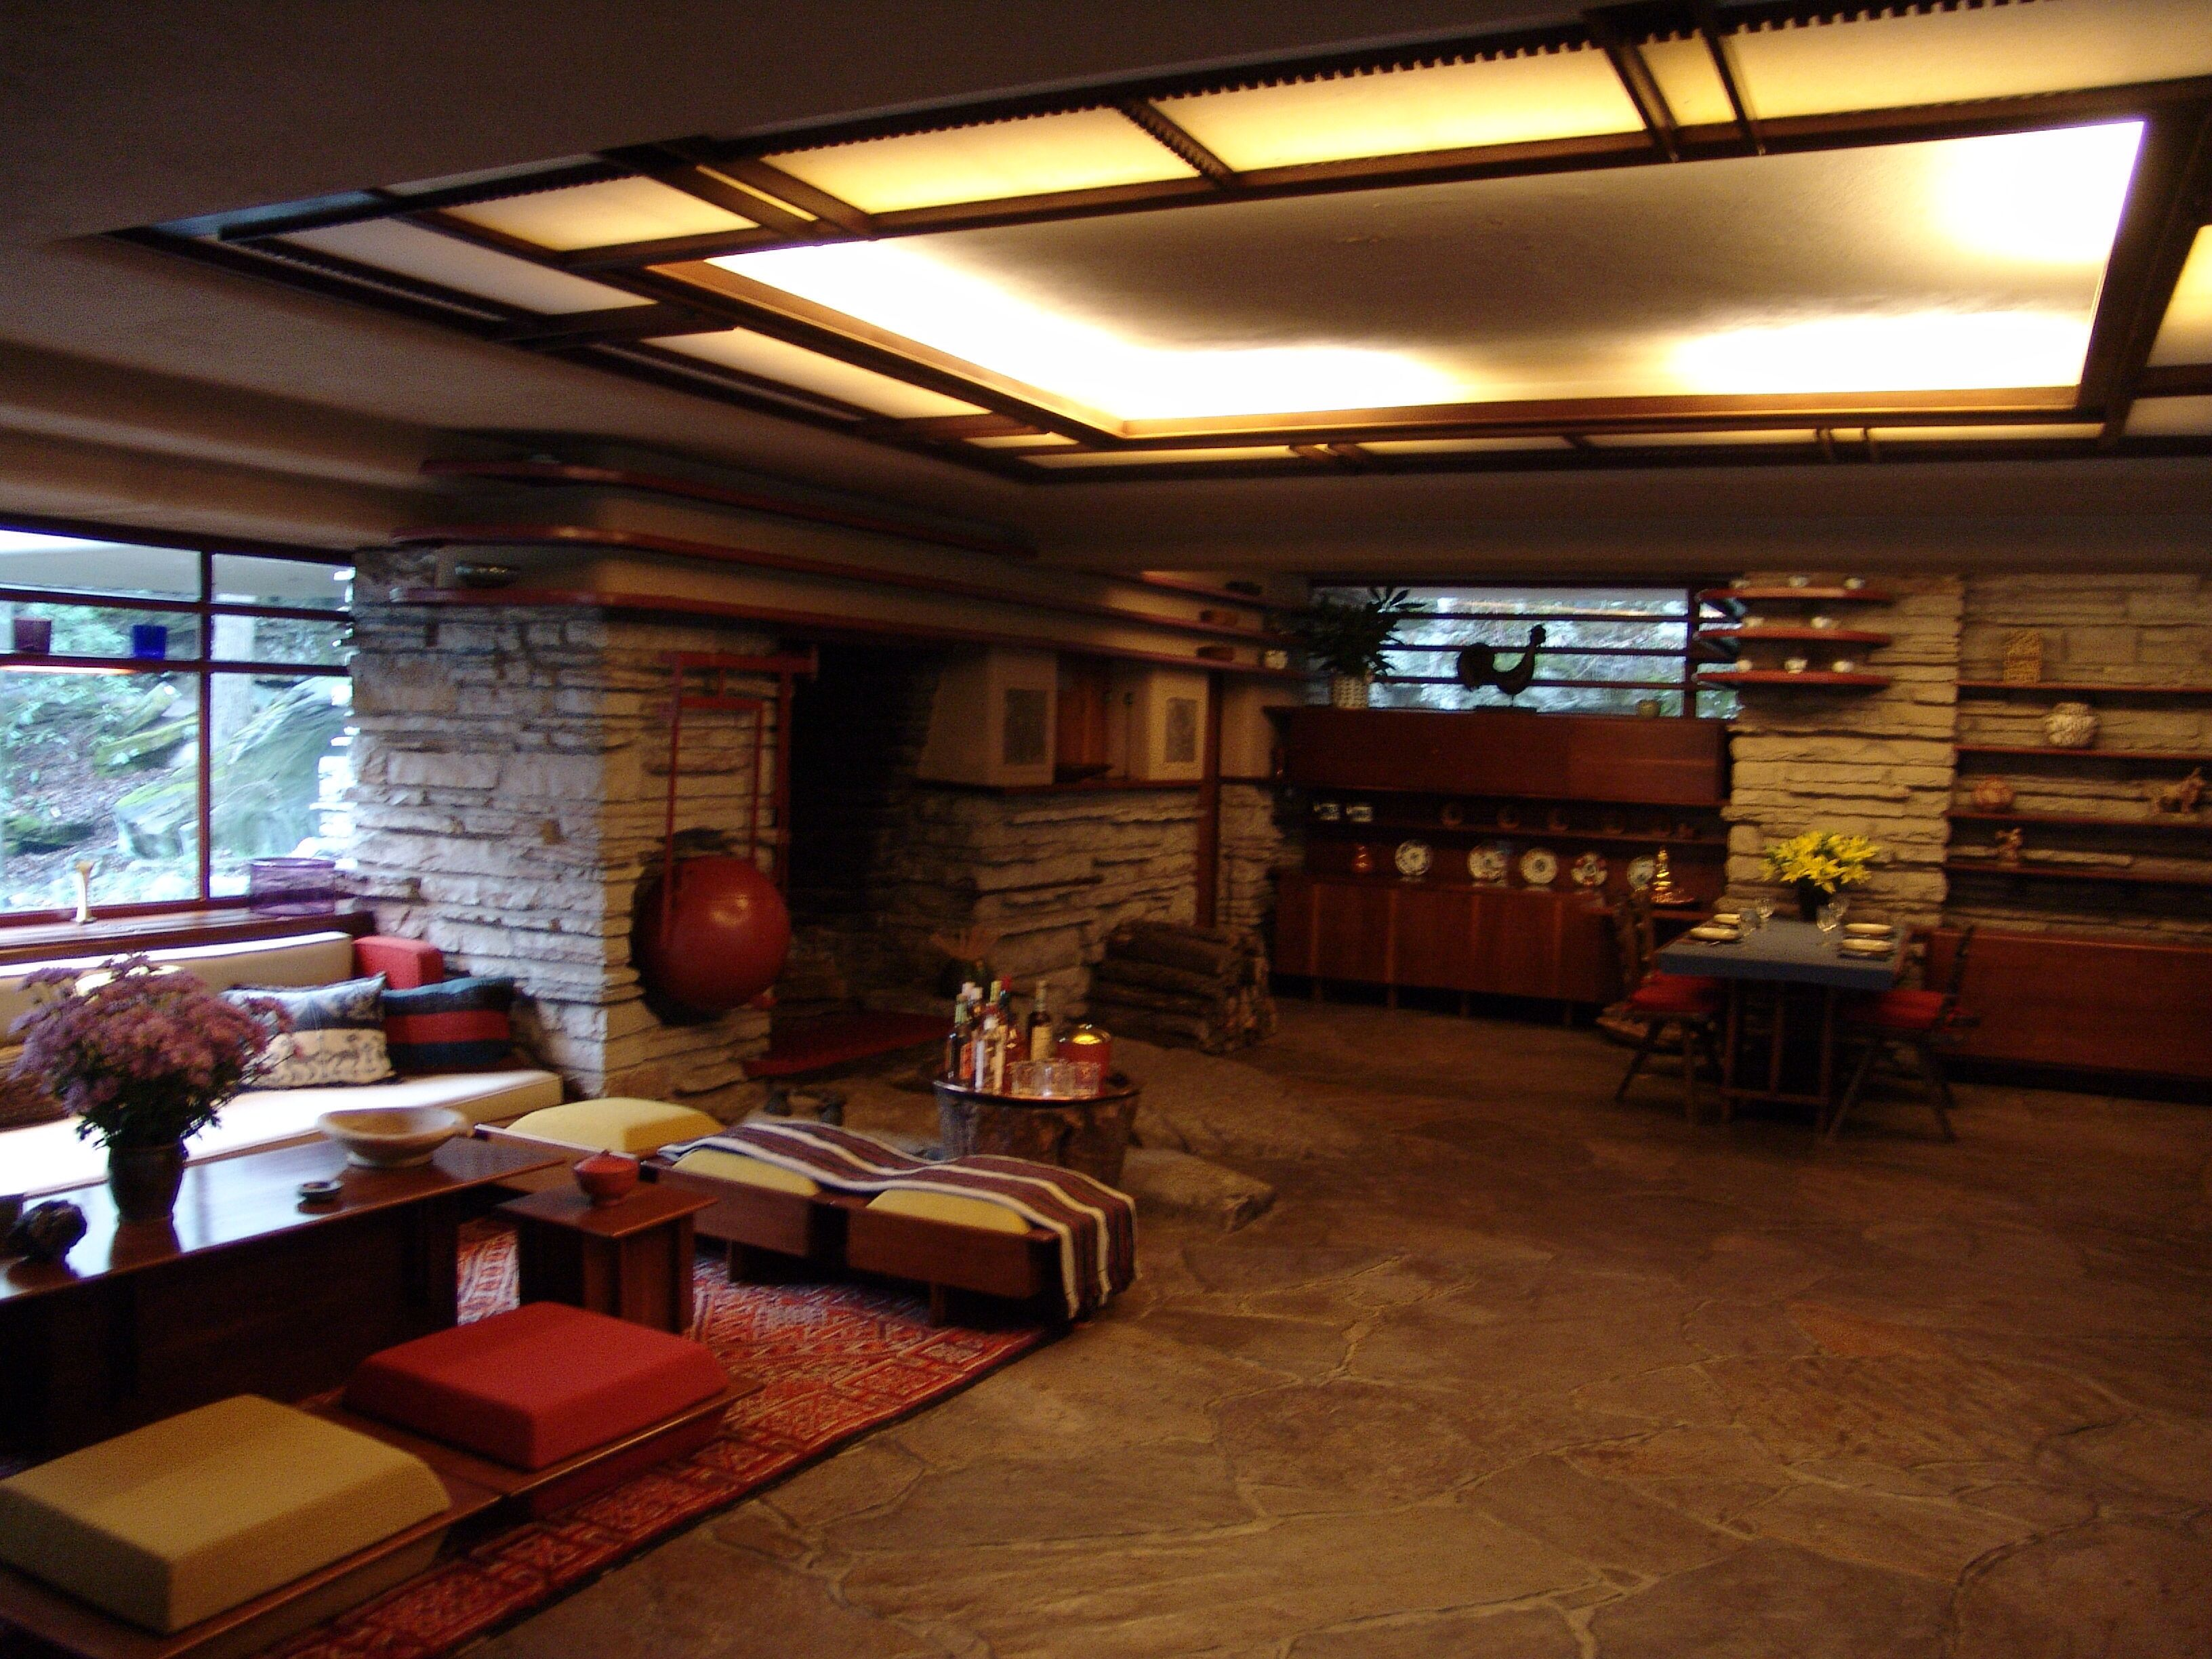 A Frank Lloyd Wright Interior Design With Images Fallingwater